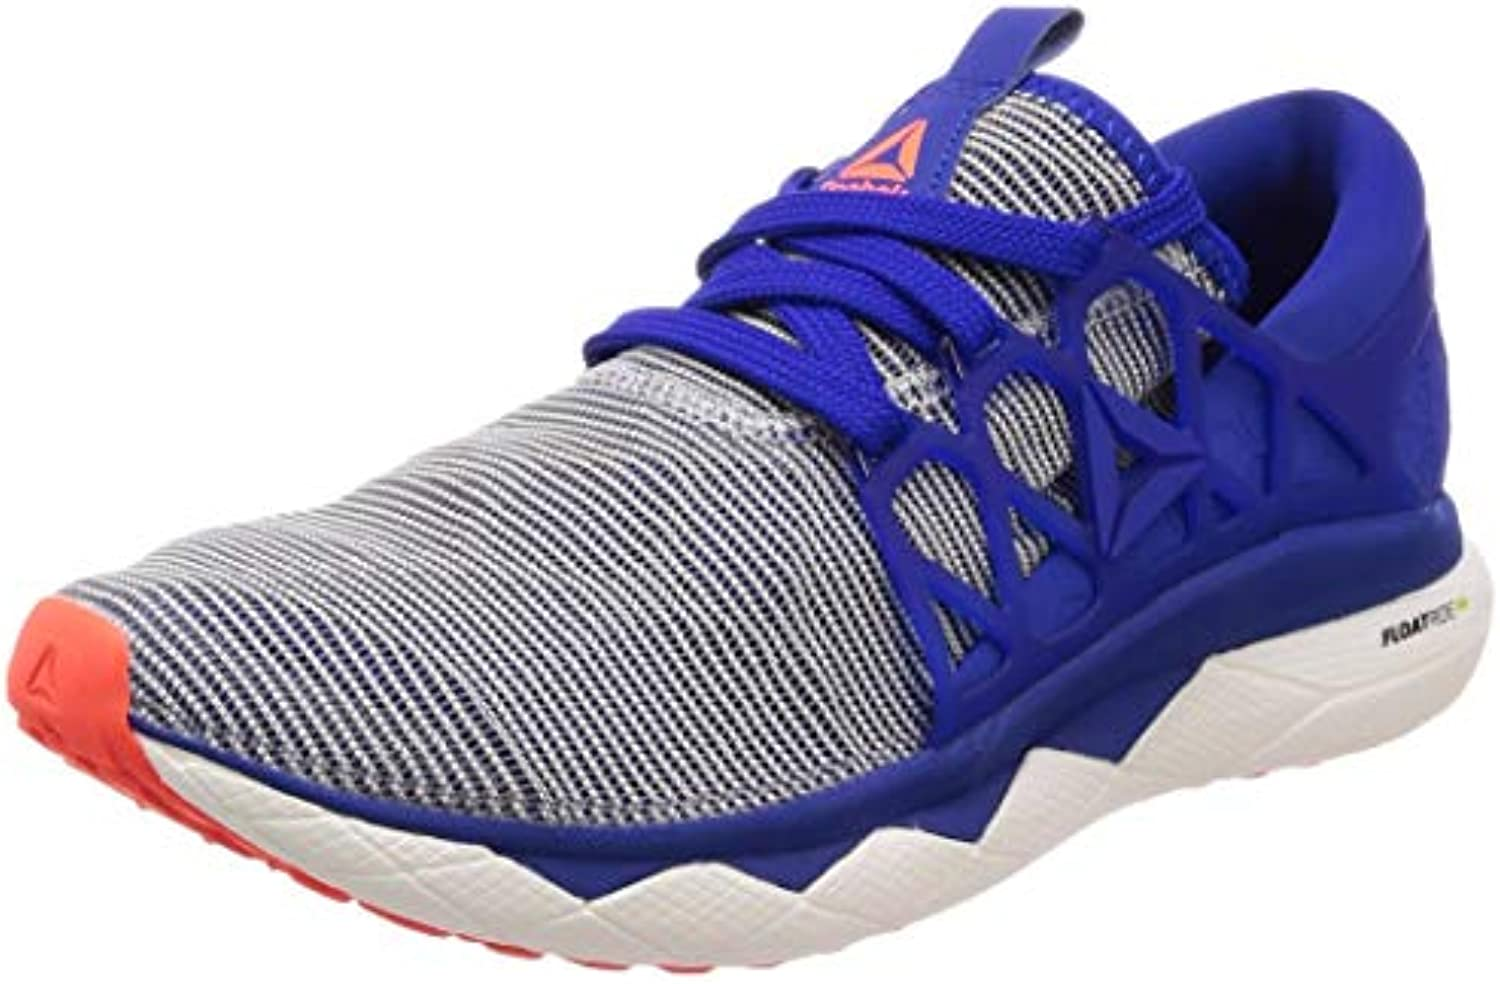 Reebok Floatride Run Flexweave, Scape Sport Outdoor Uomo | I